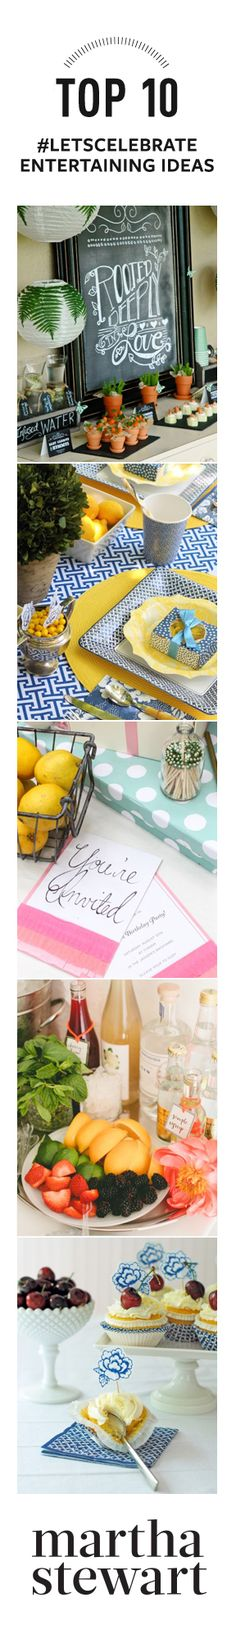 The Top 10 Entertaining Ideas from the #LetsCelebrate Pin Party